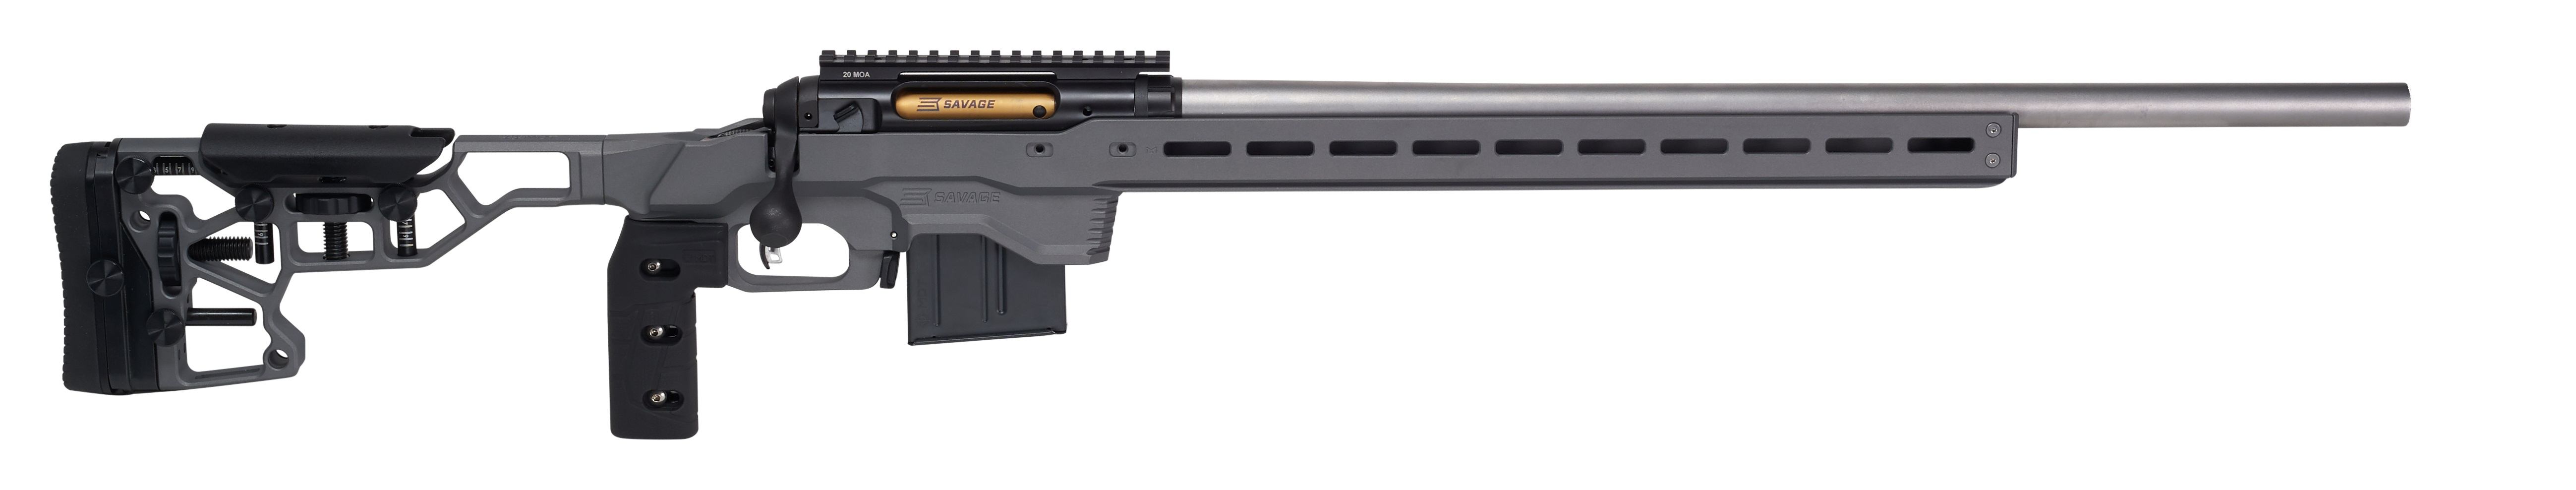 Savage Arms 110 Elite Precision 300 Win Mag